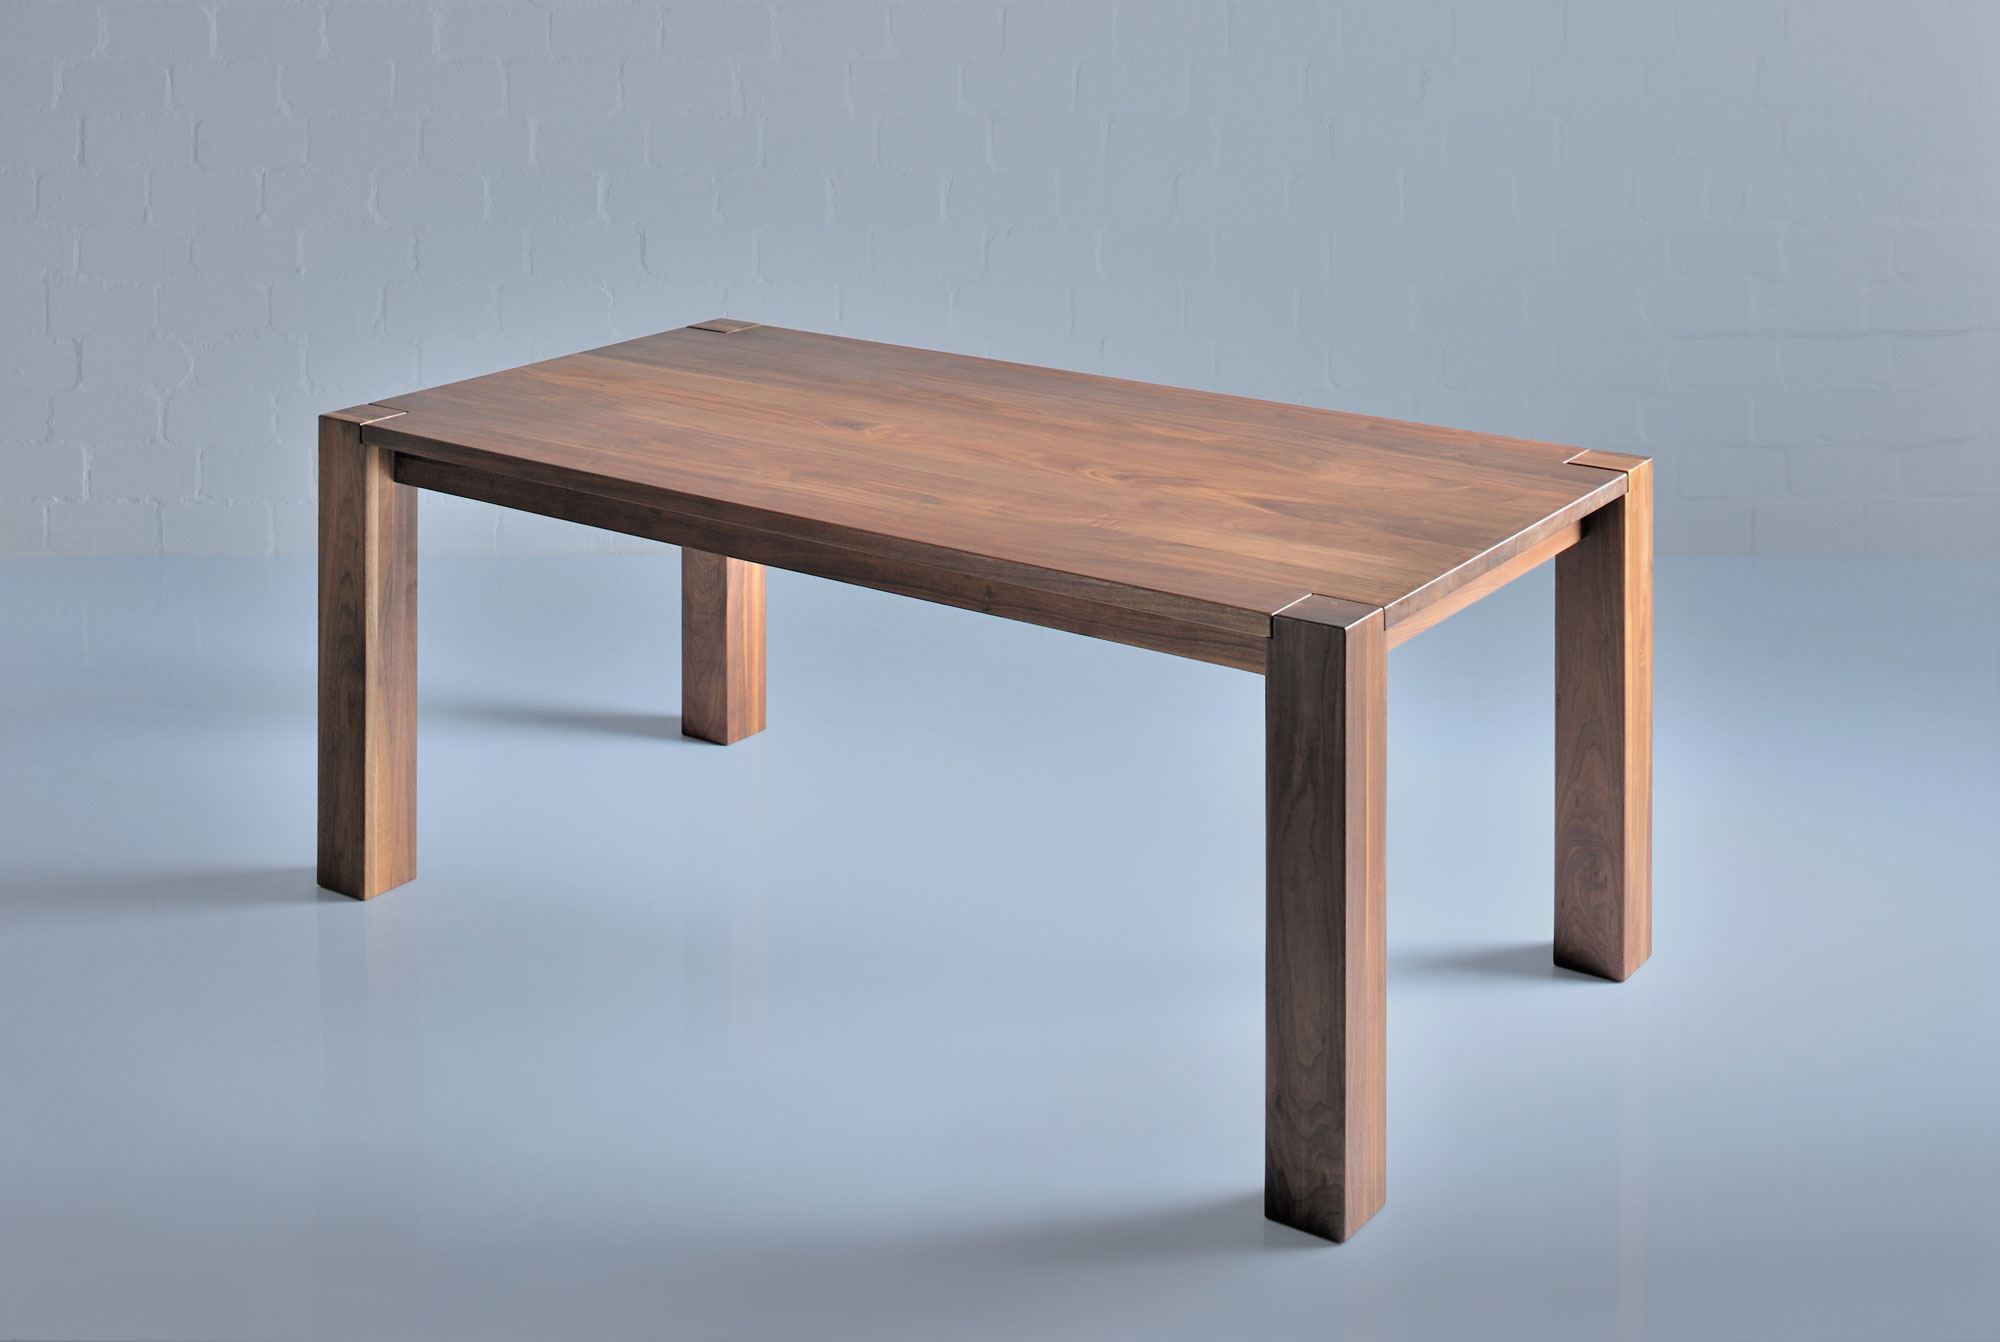 Rustic Oak Dining Table TAURUS 3 1165b custom made in solid wood by vitamin design